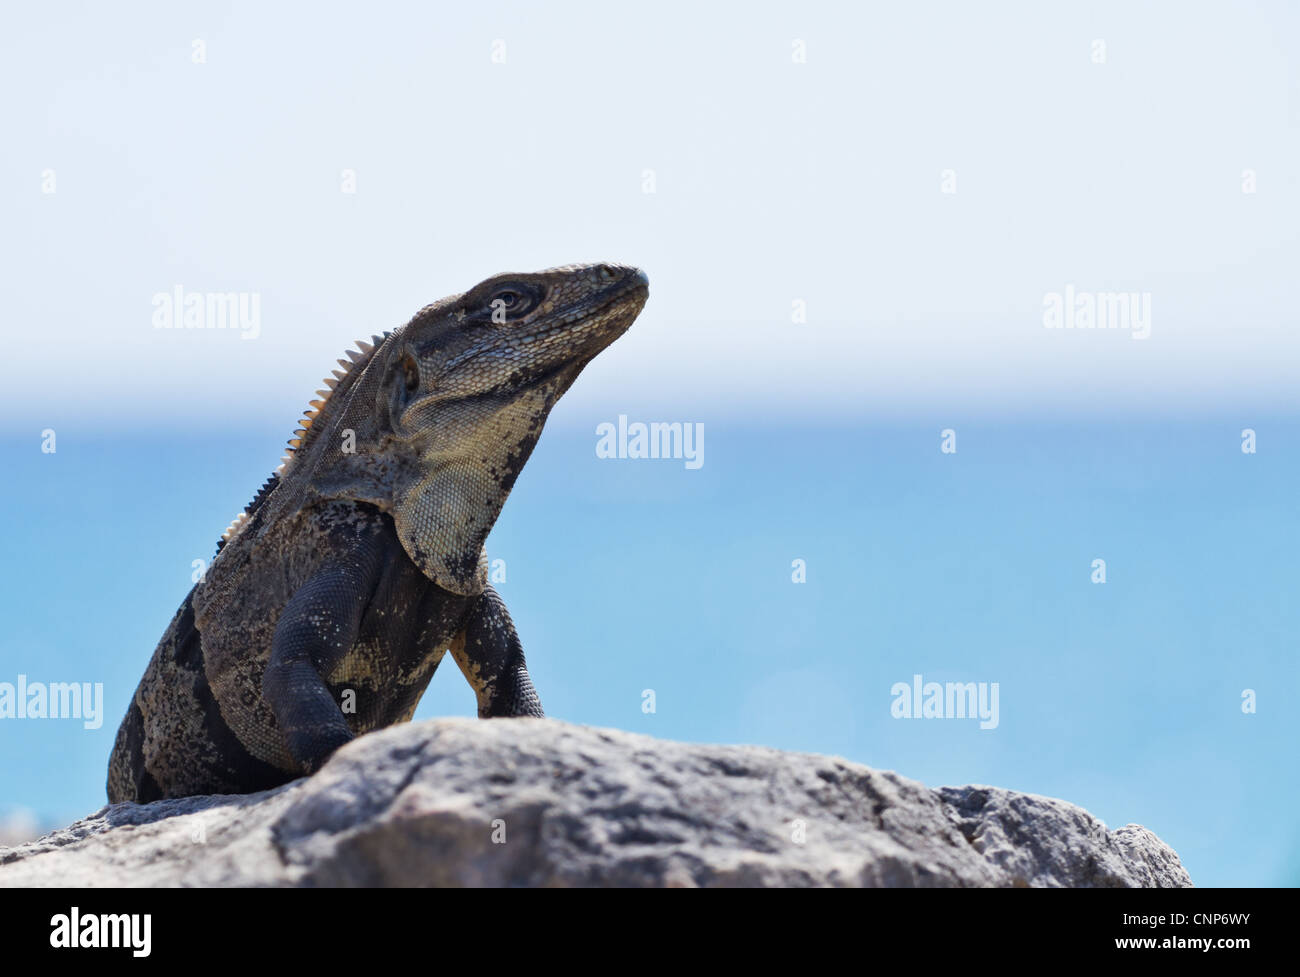 A large Iguana sun bakes on the ruins of an ancient civilization at Tulum Mexico. - Stock Image